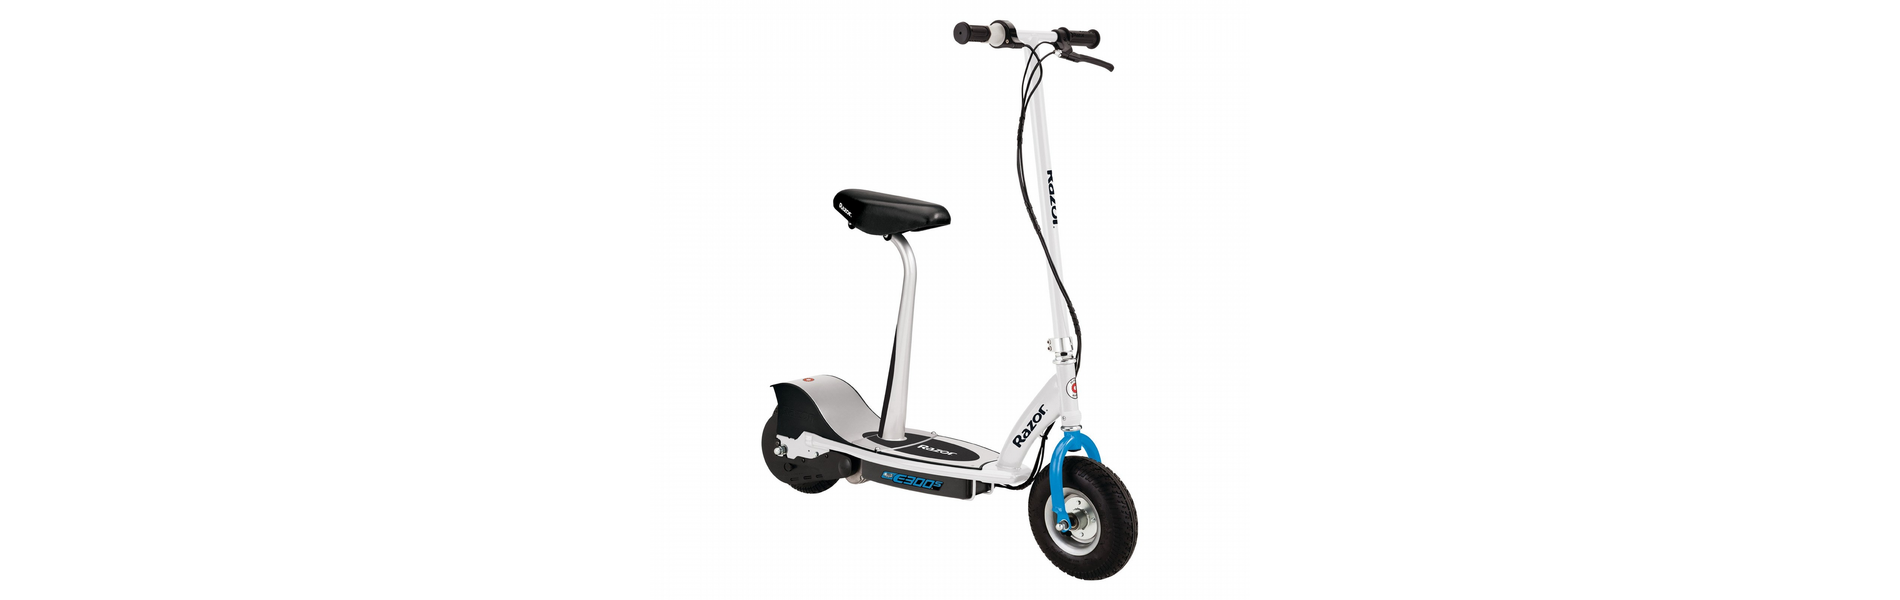 E300S ELECTRIC SCOOTER WHITE/BLUE